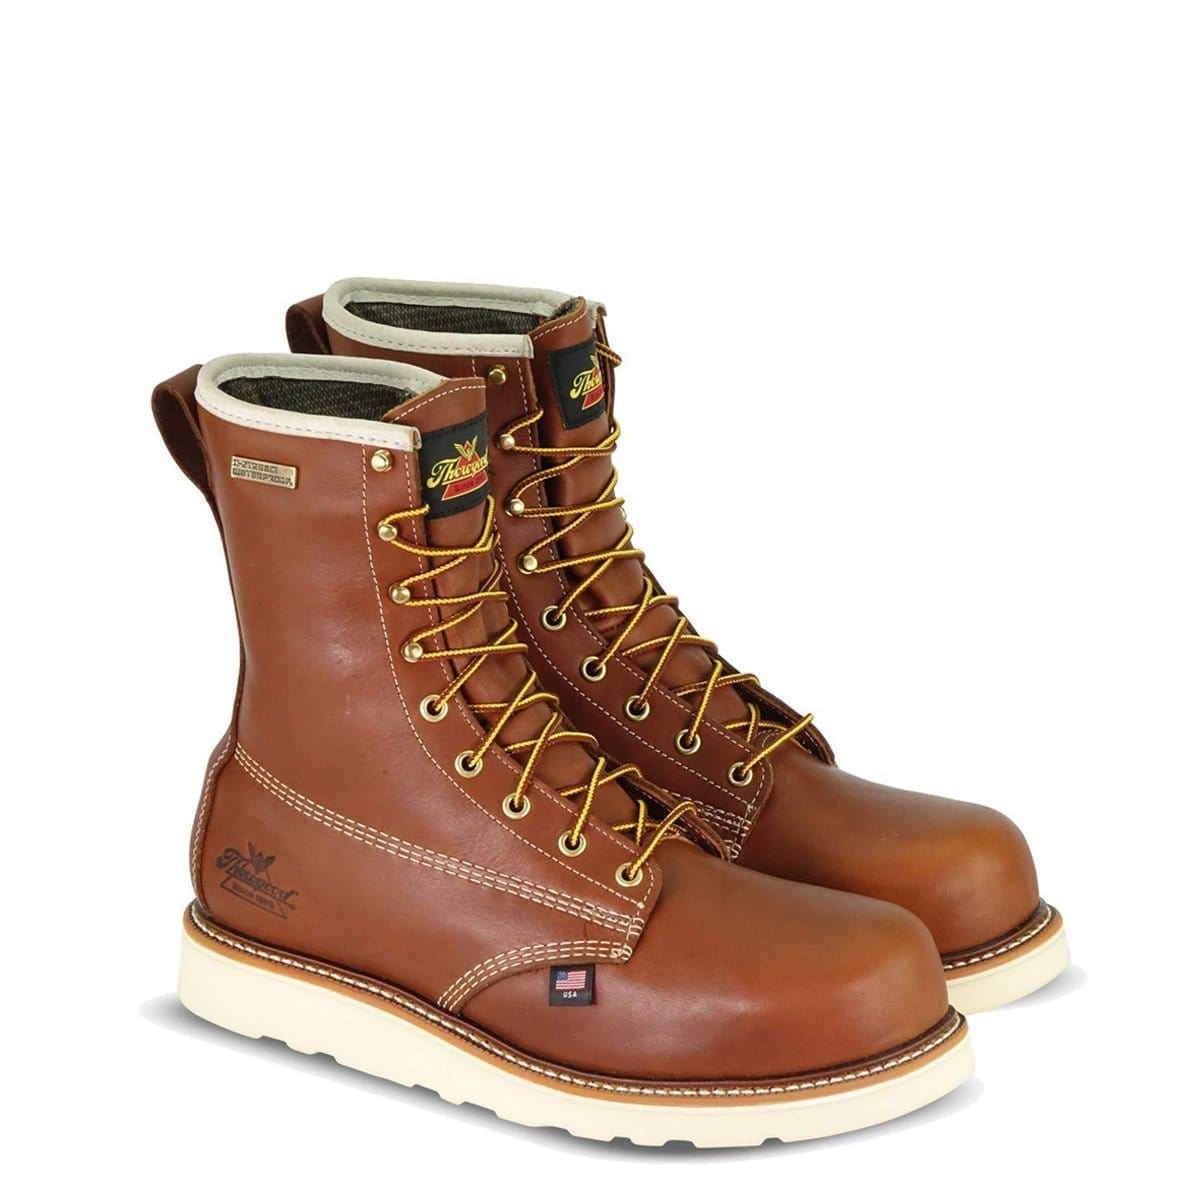 All Thorogood Clearance Boots